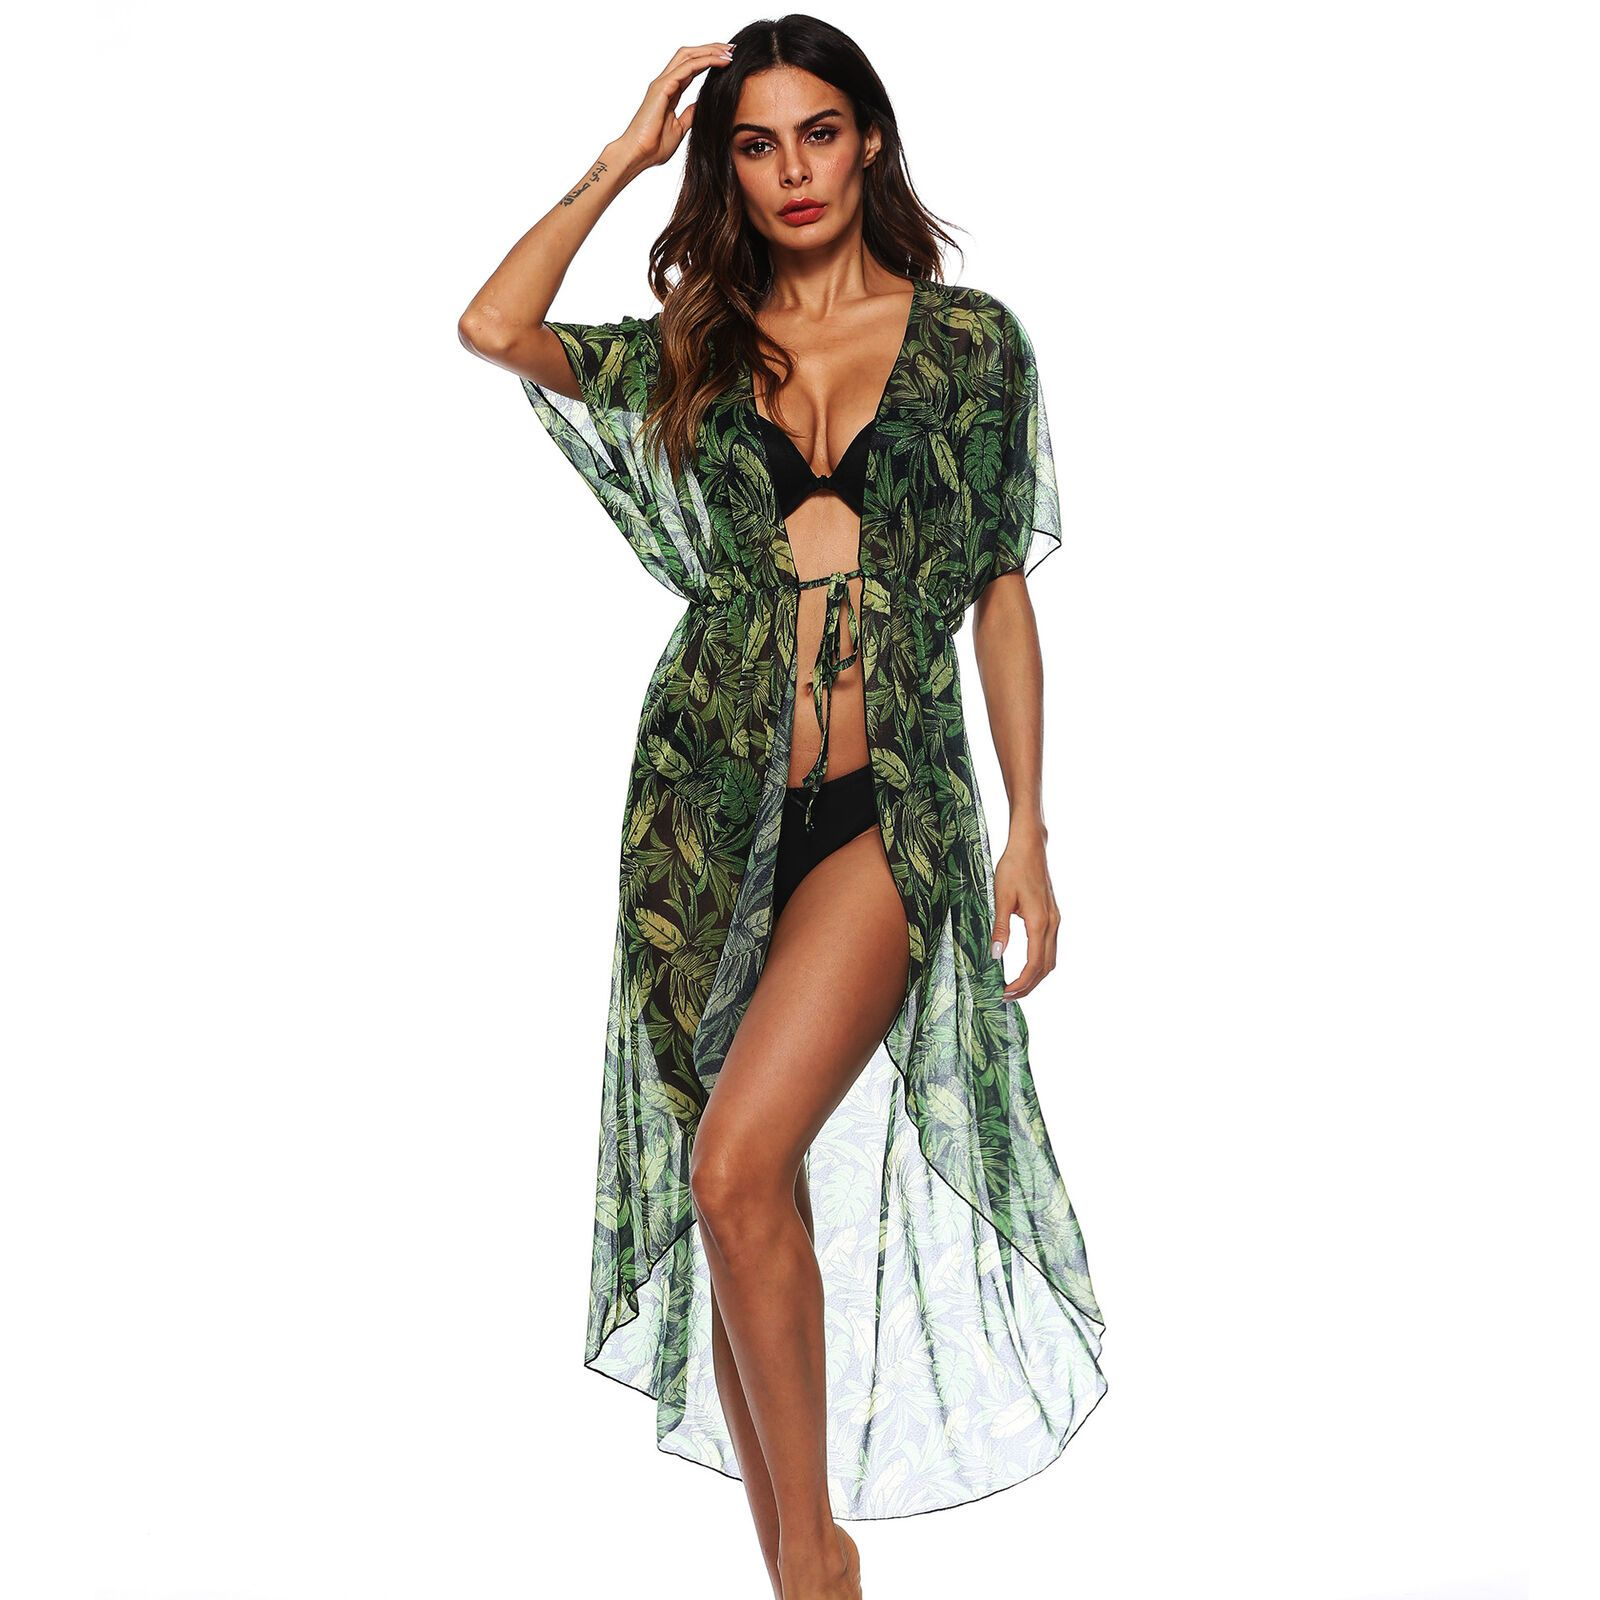 2019 New Bikini Cover Up Chiffon Green Banana Leaf Print Beach Shirt Sexy Sunscreen Cardigan Holiday Skirt Cover Up 8